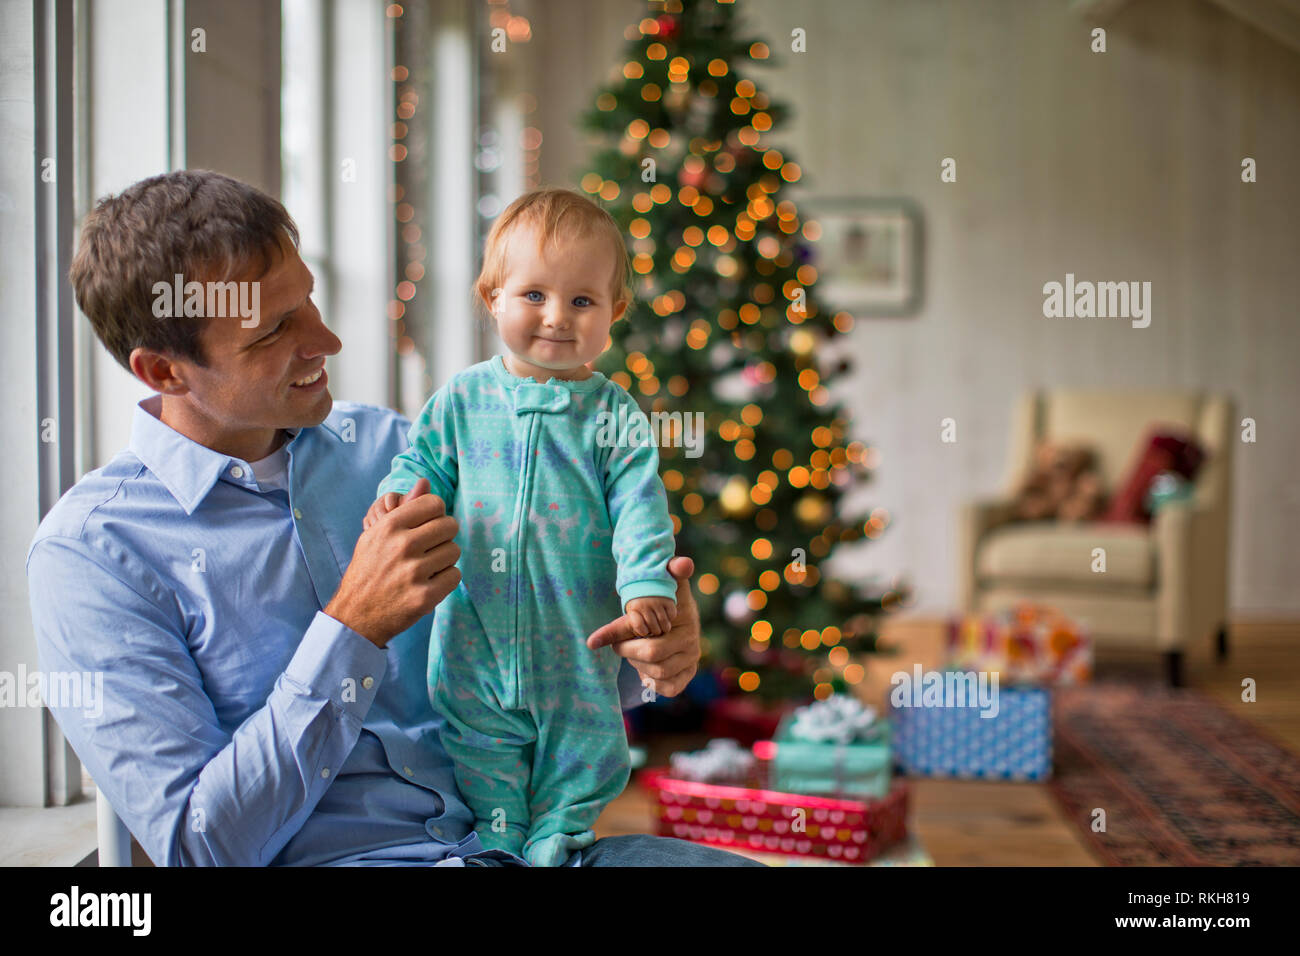 Portrait of a father holding his baby daughter at Christmas. - Stock Image